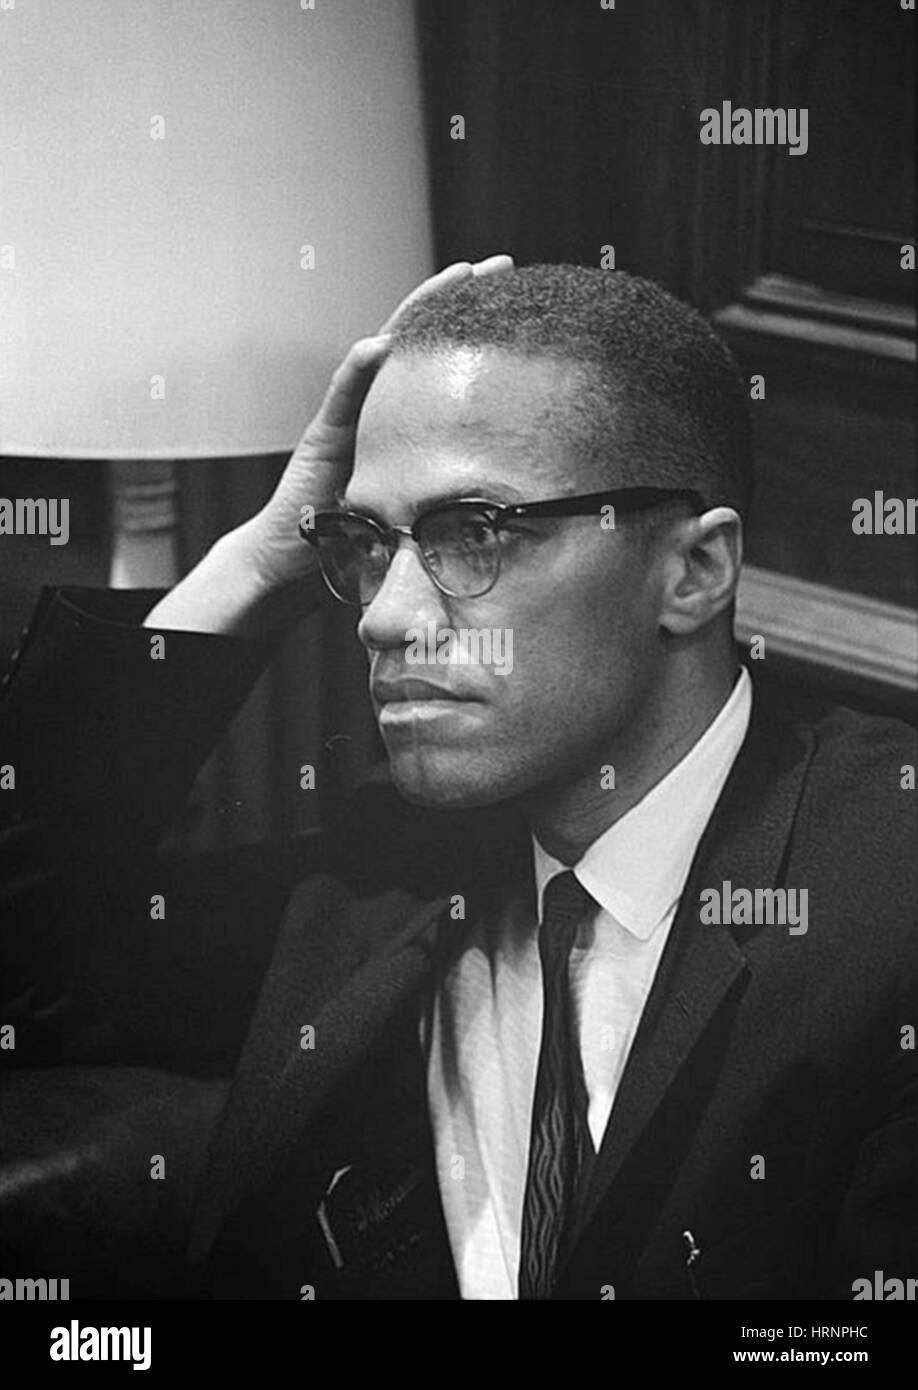 a biography of malcolm x a human rights activist Site devoted famoust fighter for human rights malcolm x.